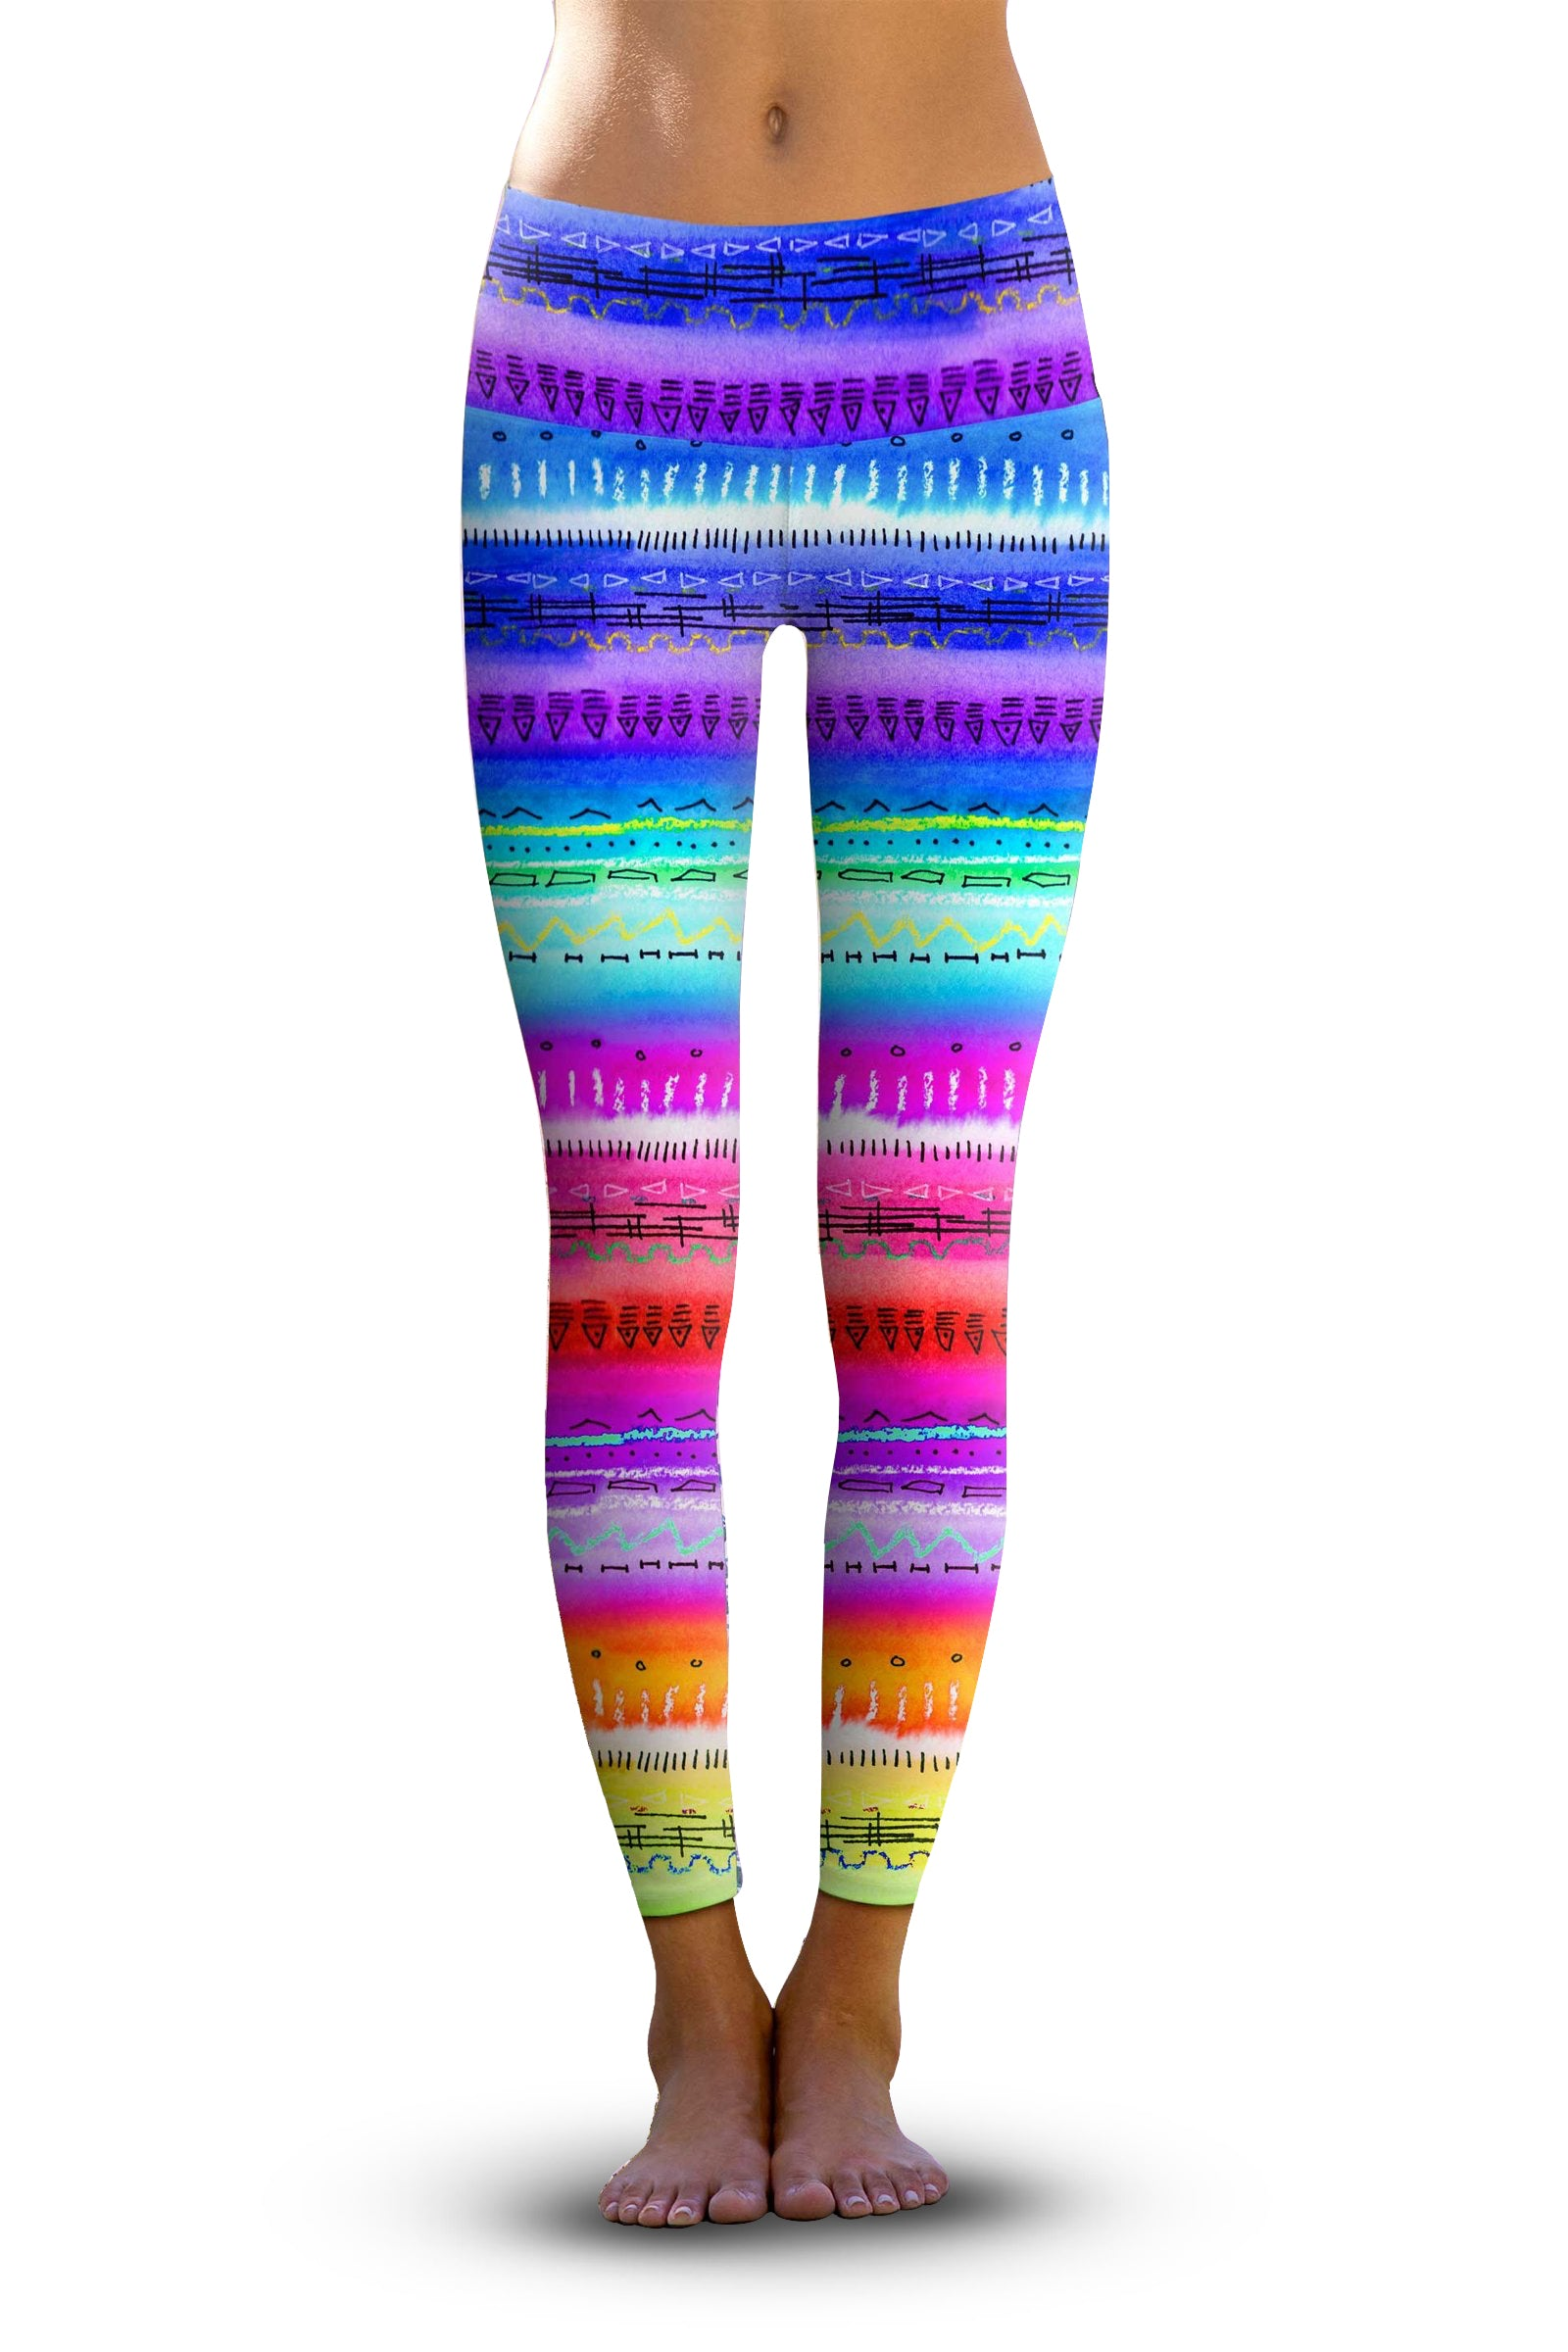 #Sunset Salutation, Eco-Friendly Active Performance Leggings